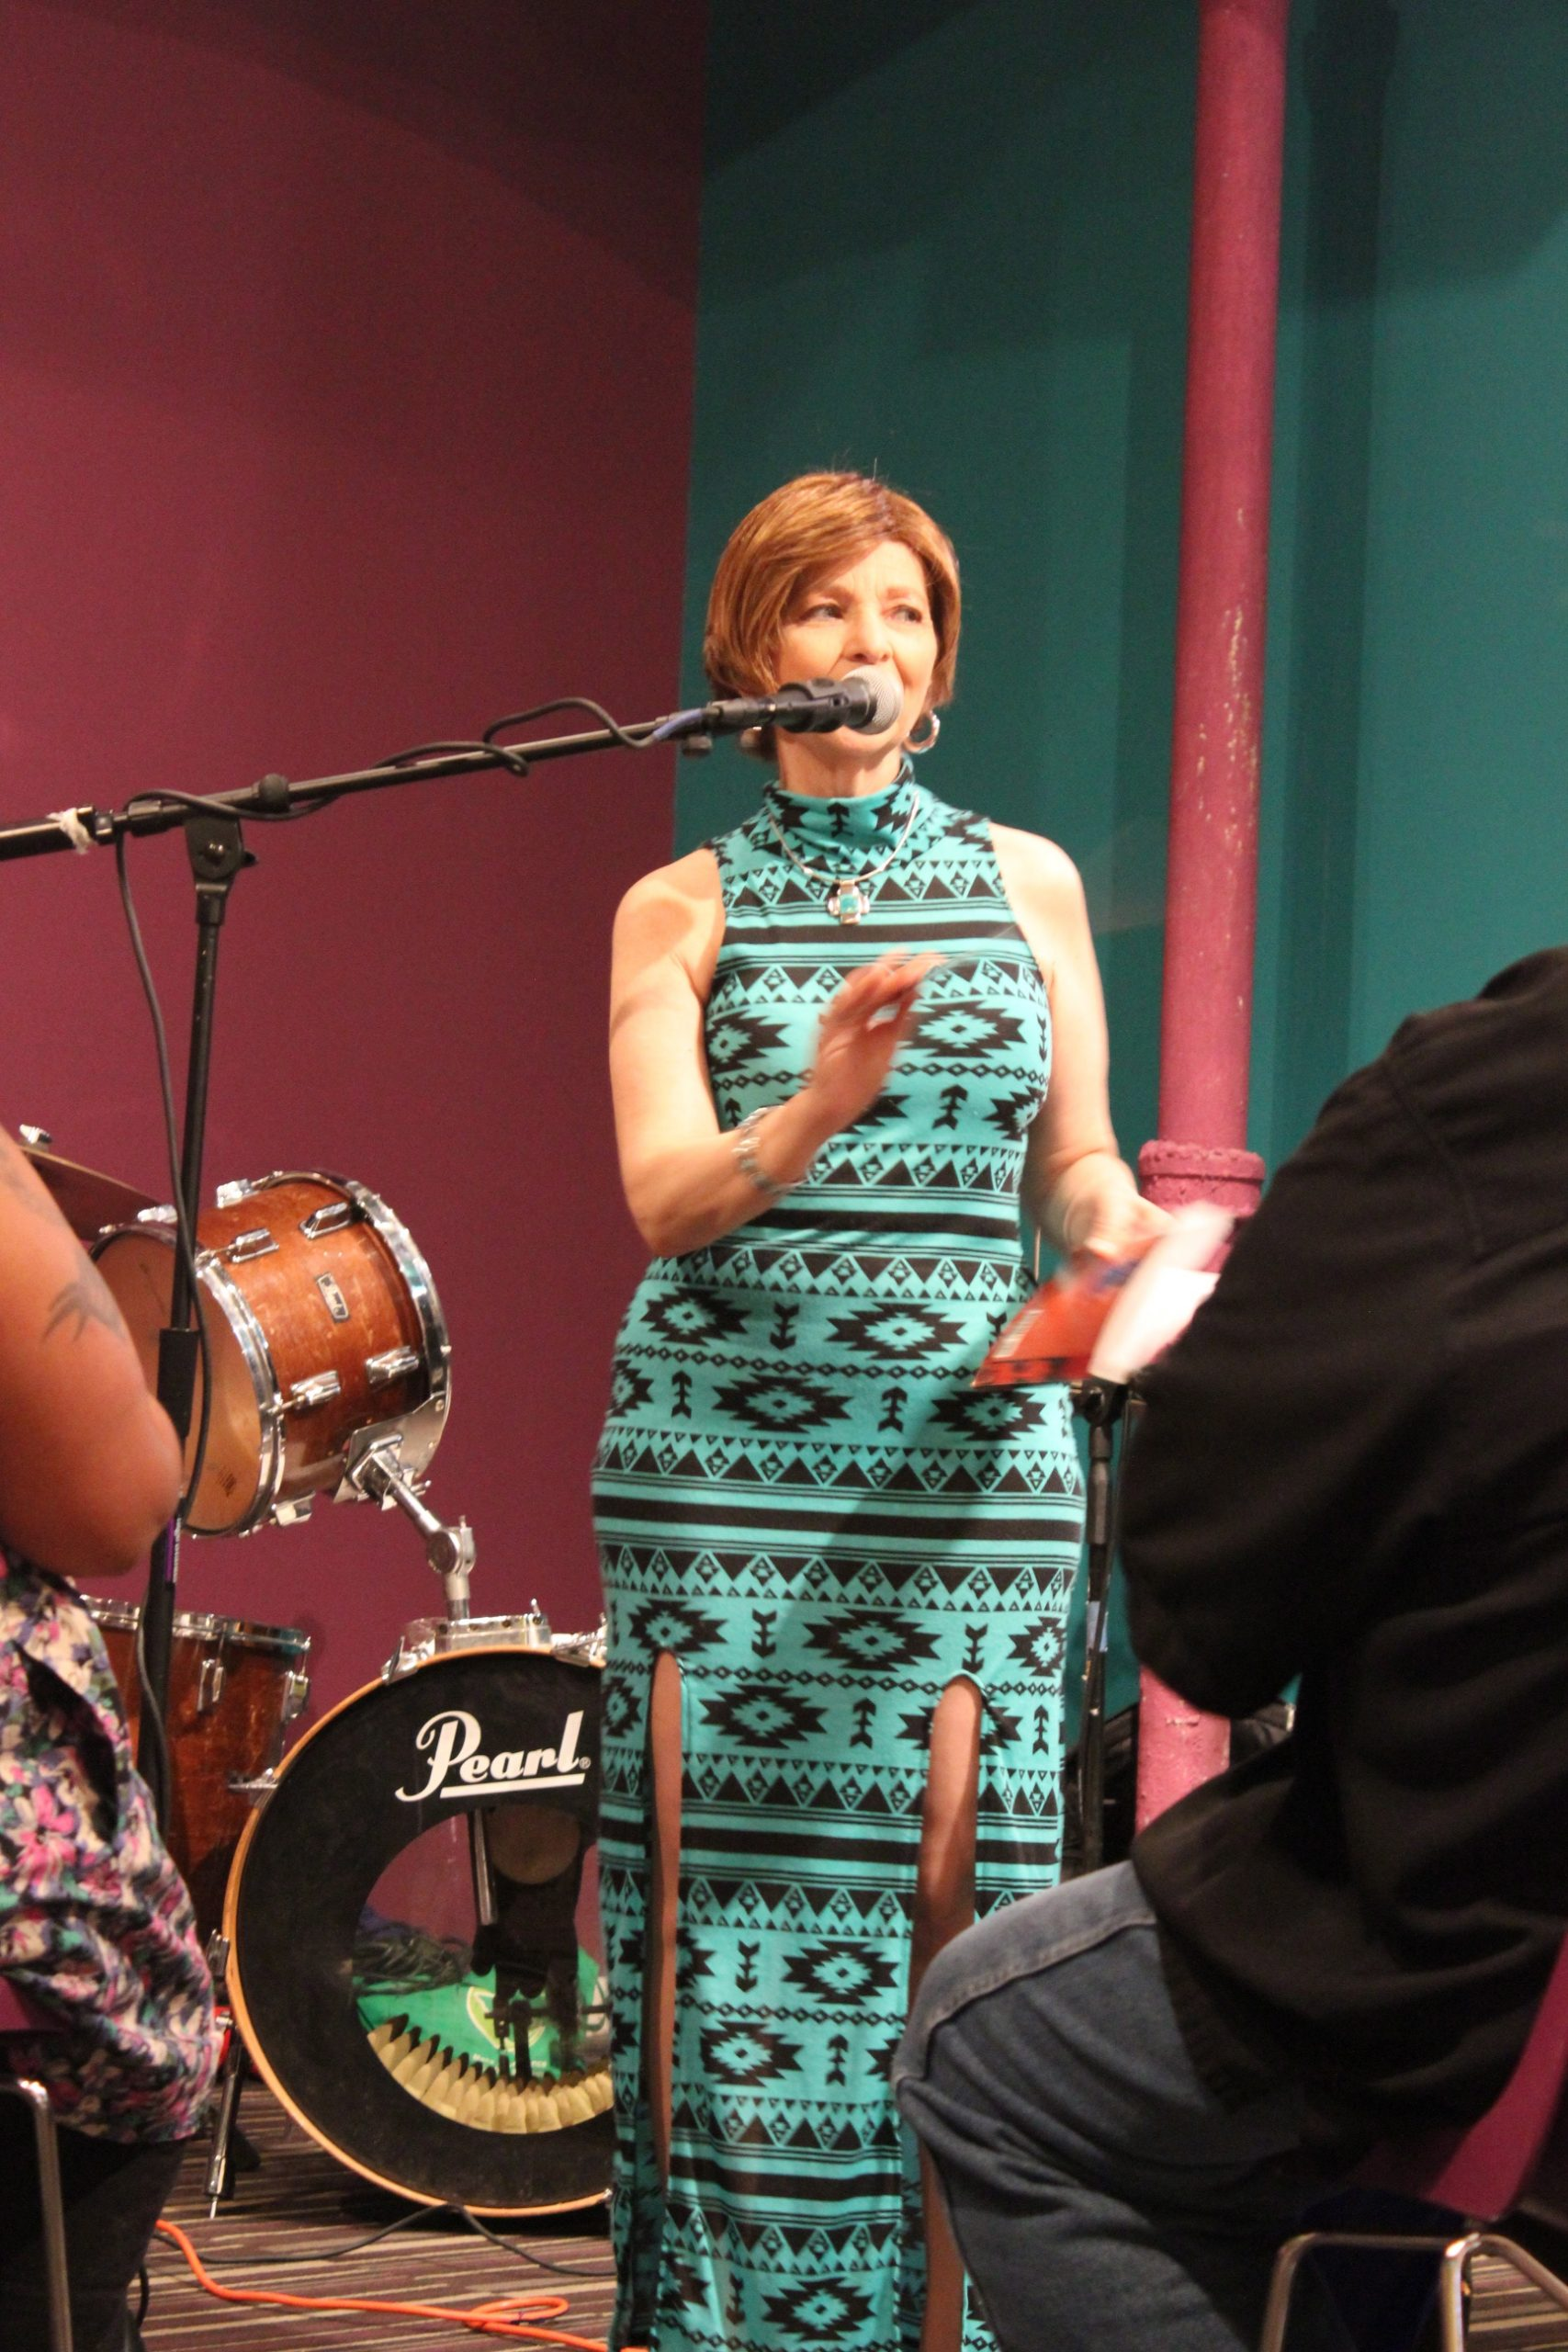 Inaugural San Antonio Poet Laureate Carmen Tafolla speaks at the 100 Thousand Poets for Change event at Gemini Ink. Photo by Melanie Robinson.